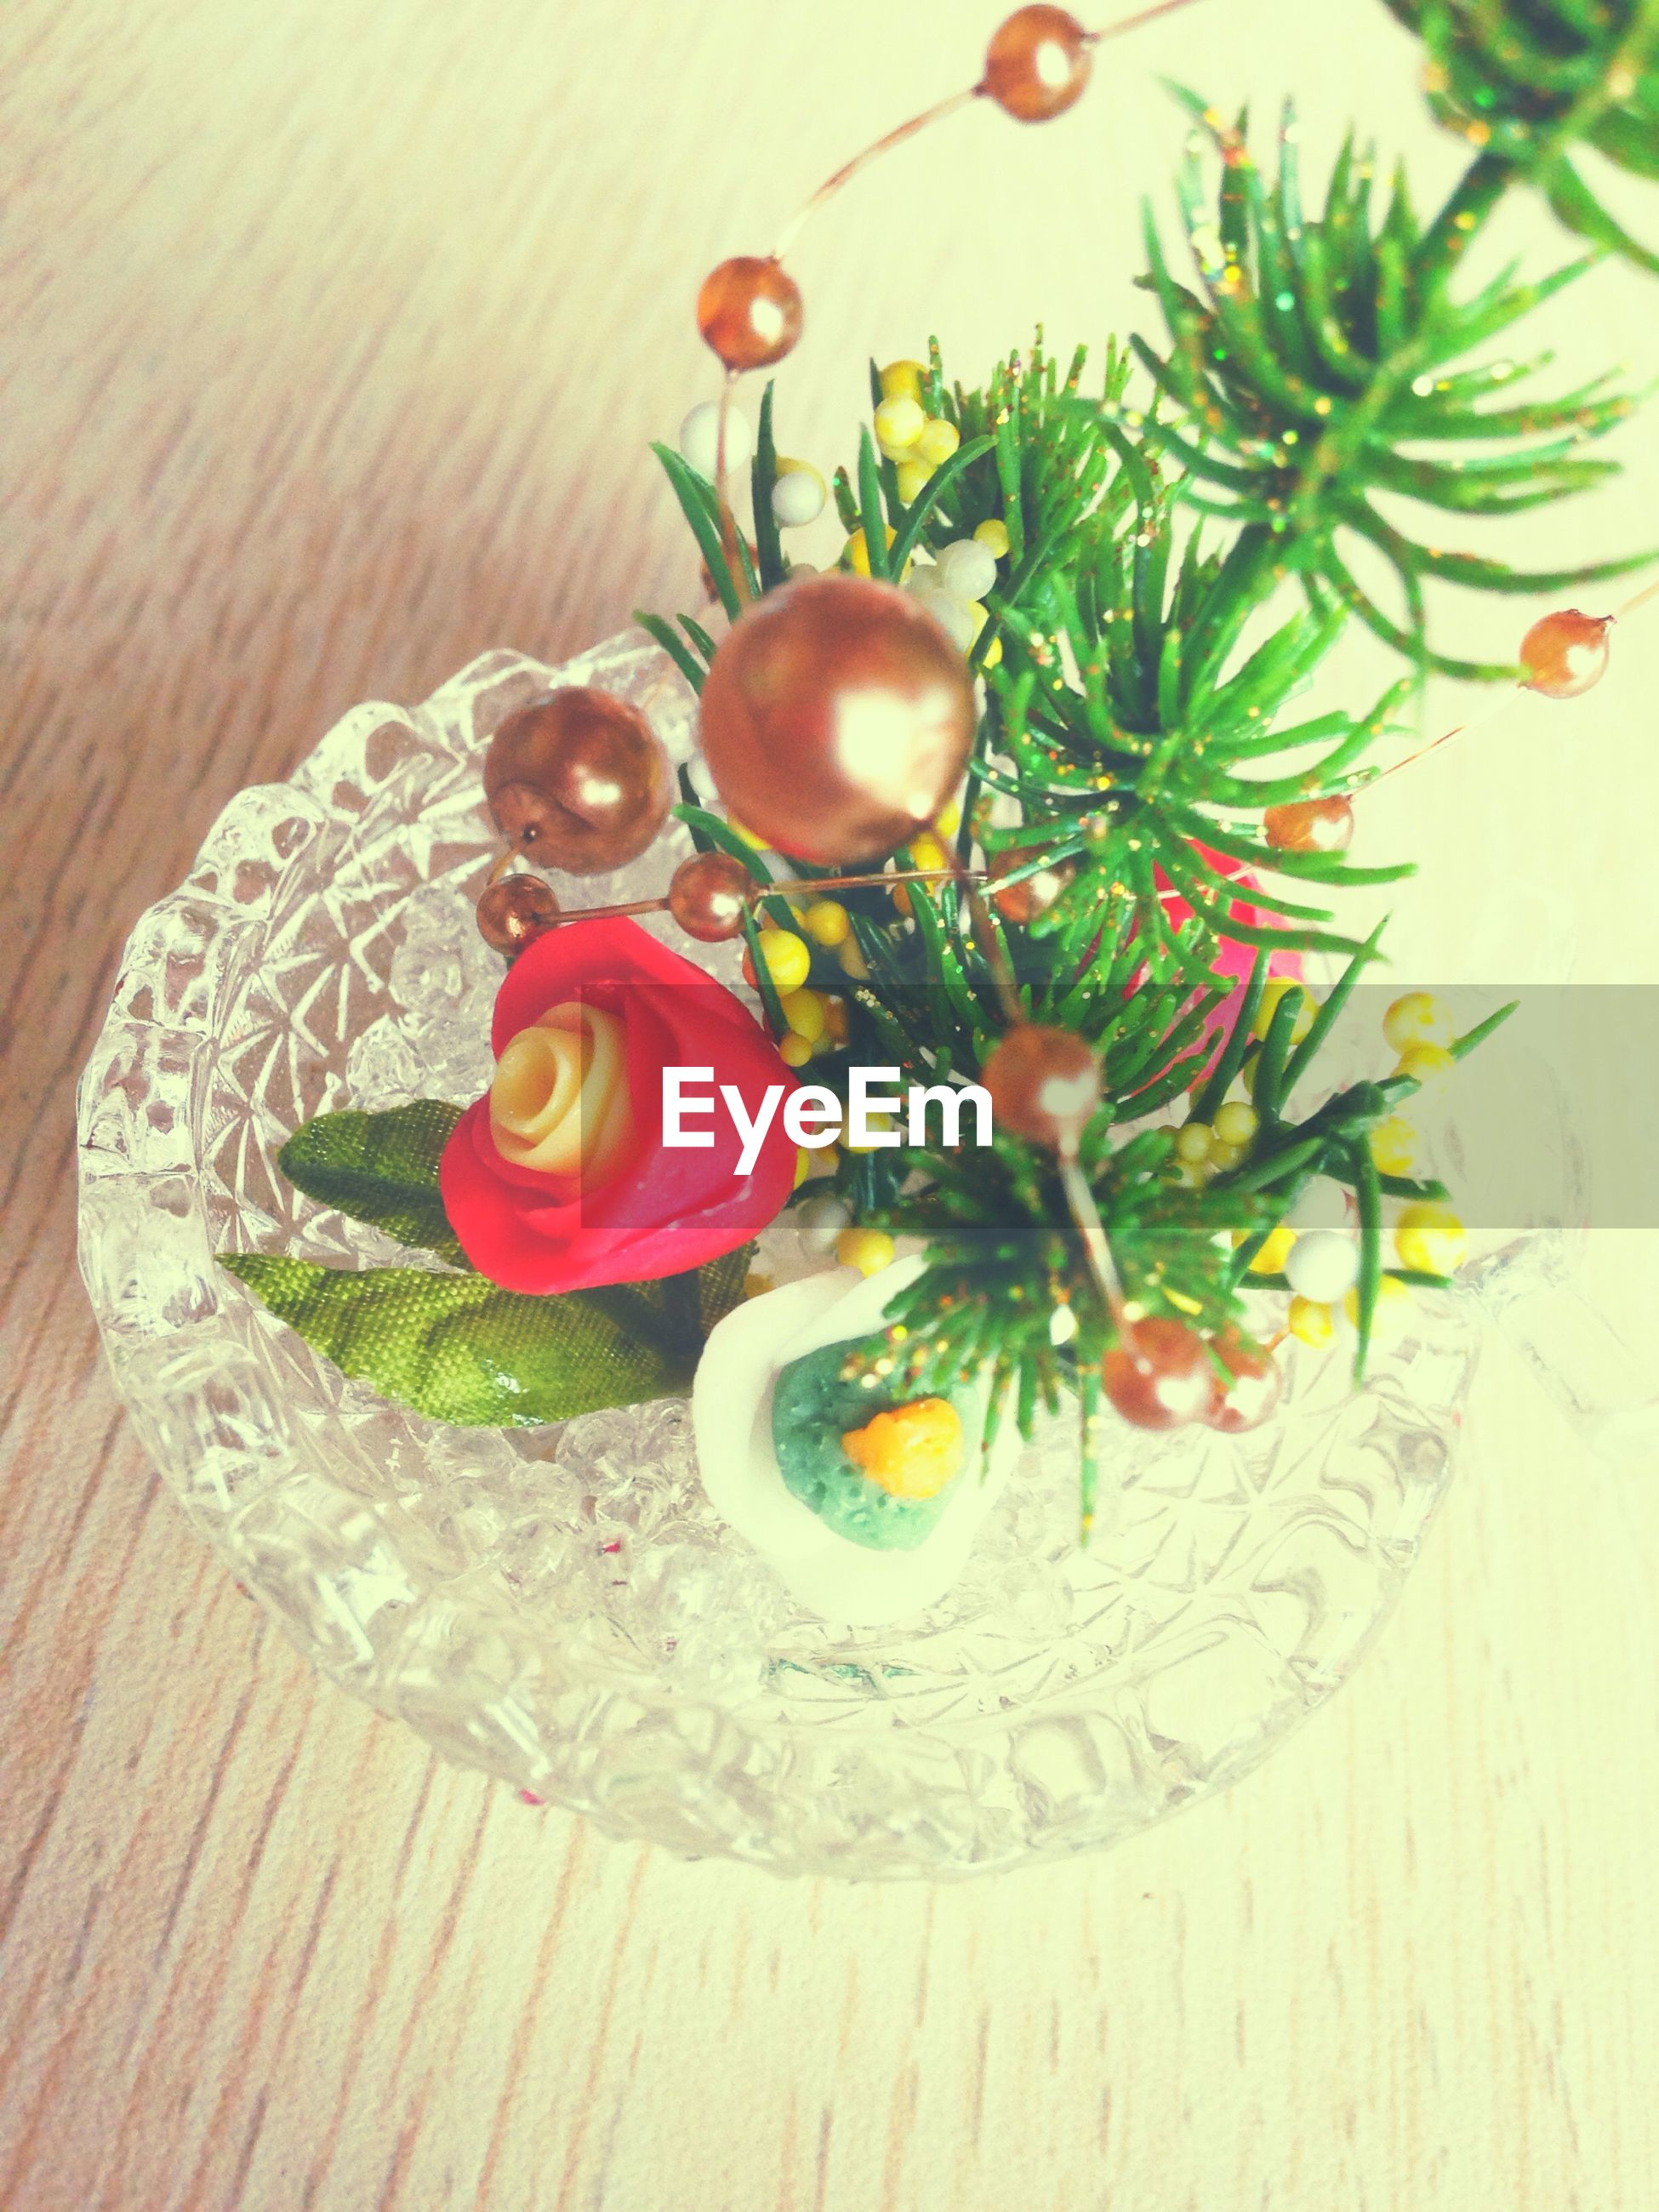 table, indoors, freshness, flower, high angle view, still life, wood - material, leaf, vase, decoration, potted plant, plant, directly above, food and drink, growth, no people, close-up, fragility, wooden, food